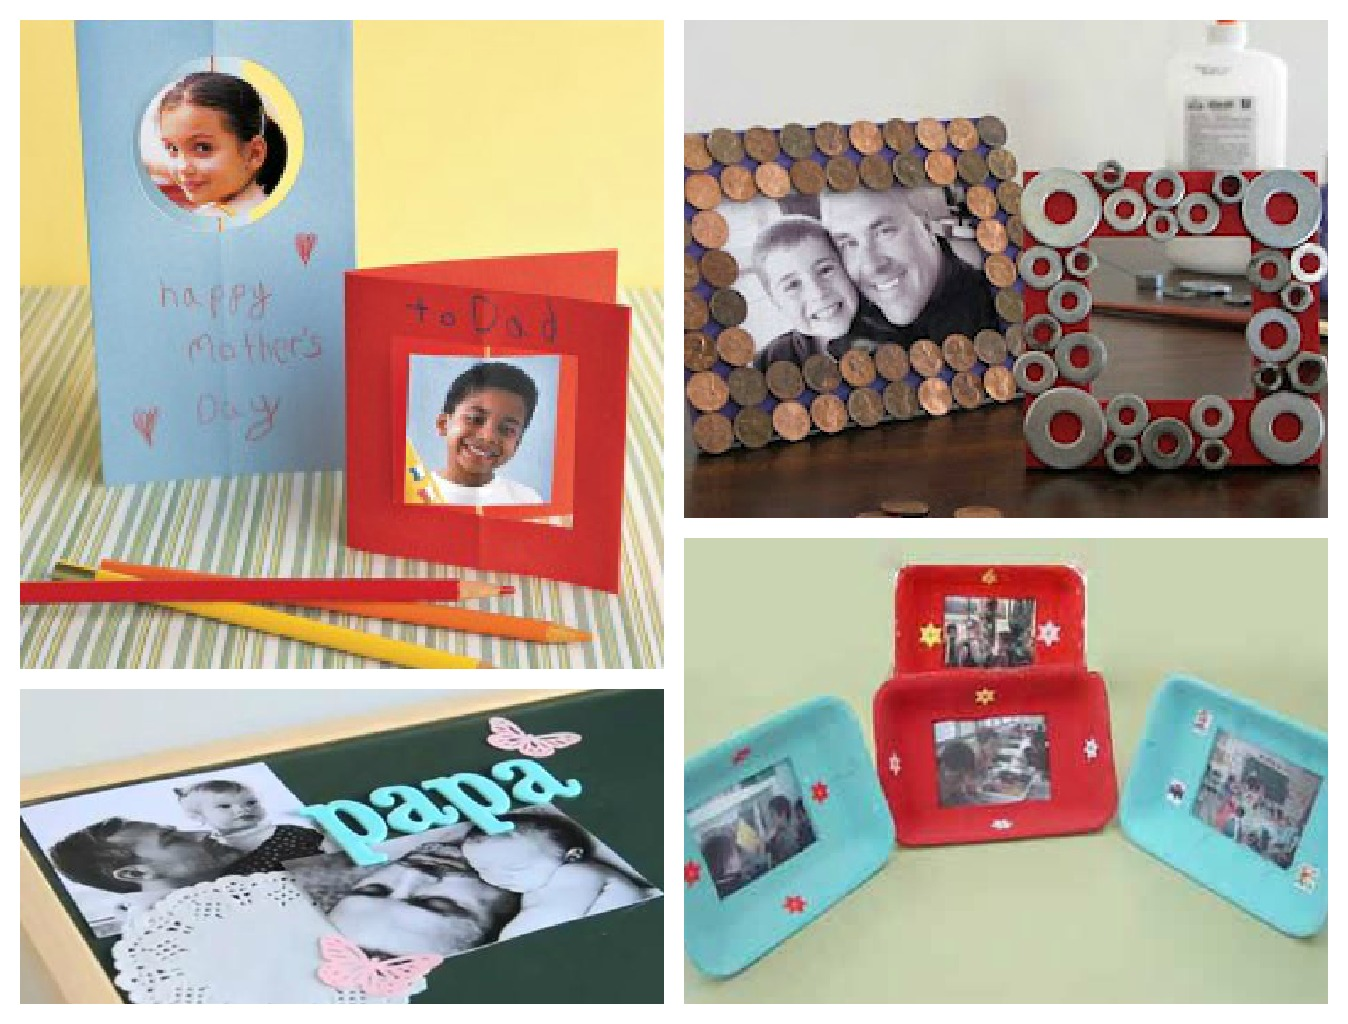 Lovers Crafts Ideas Para Regalar El Dia Del Padre - Ideas-regalo-padres